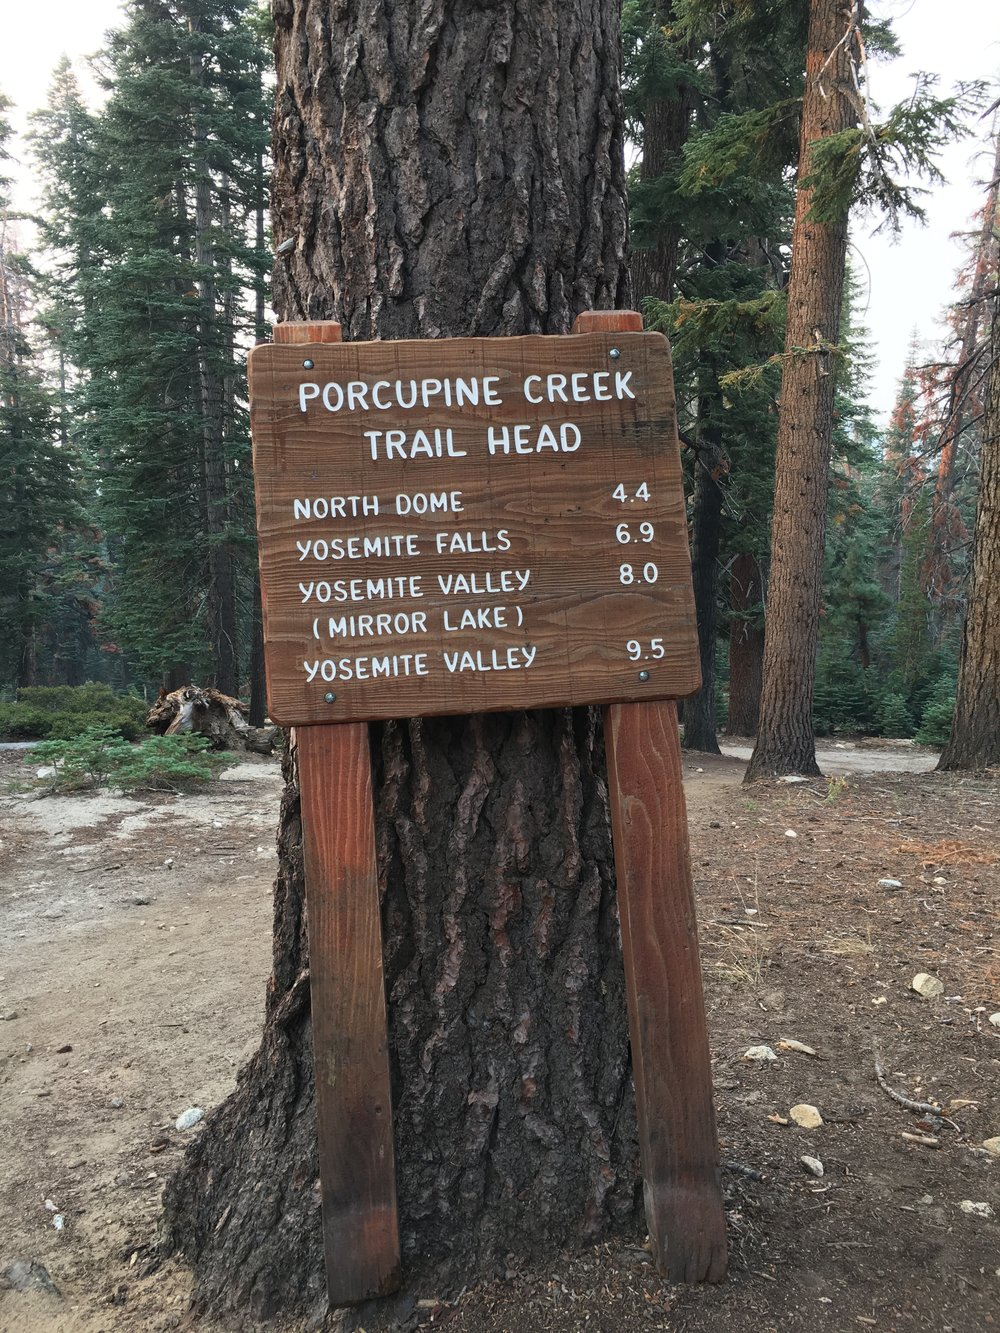 Porcupine Creek Trail Head